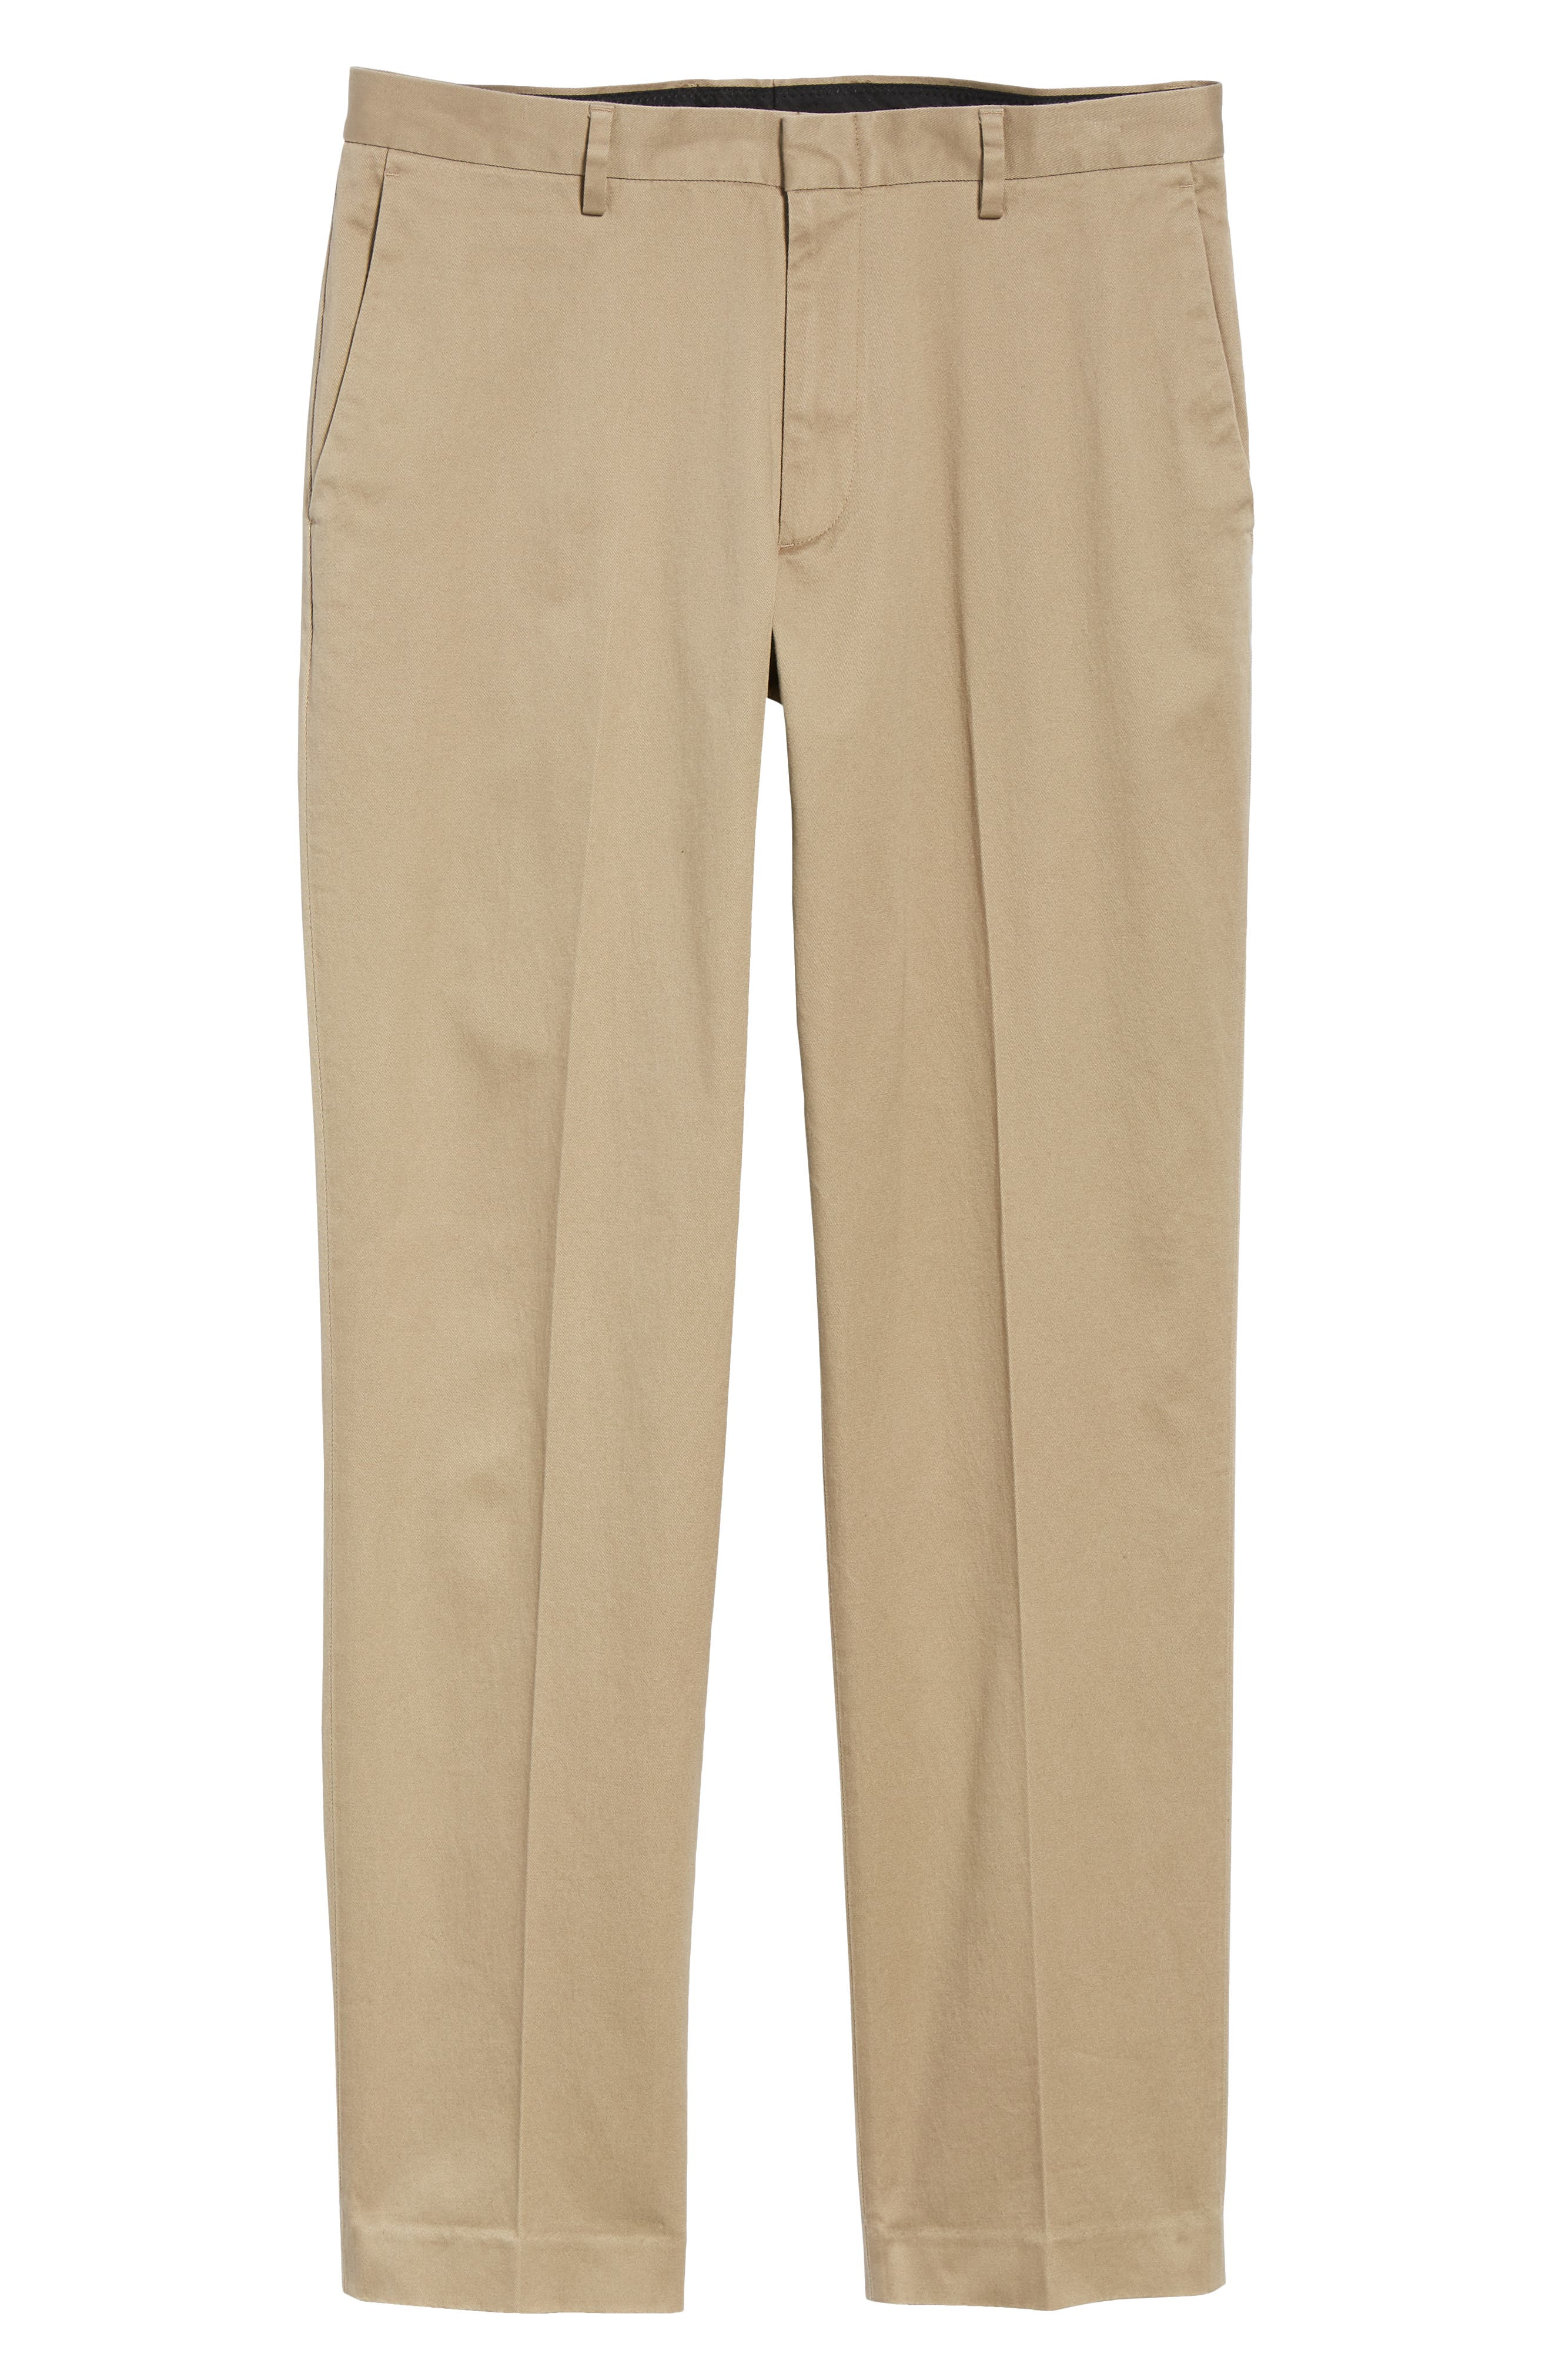 Ludlow Stretch Chino Pants,                             Alternate thumbnail 6, color,                             250